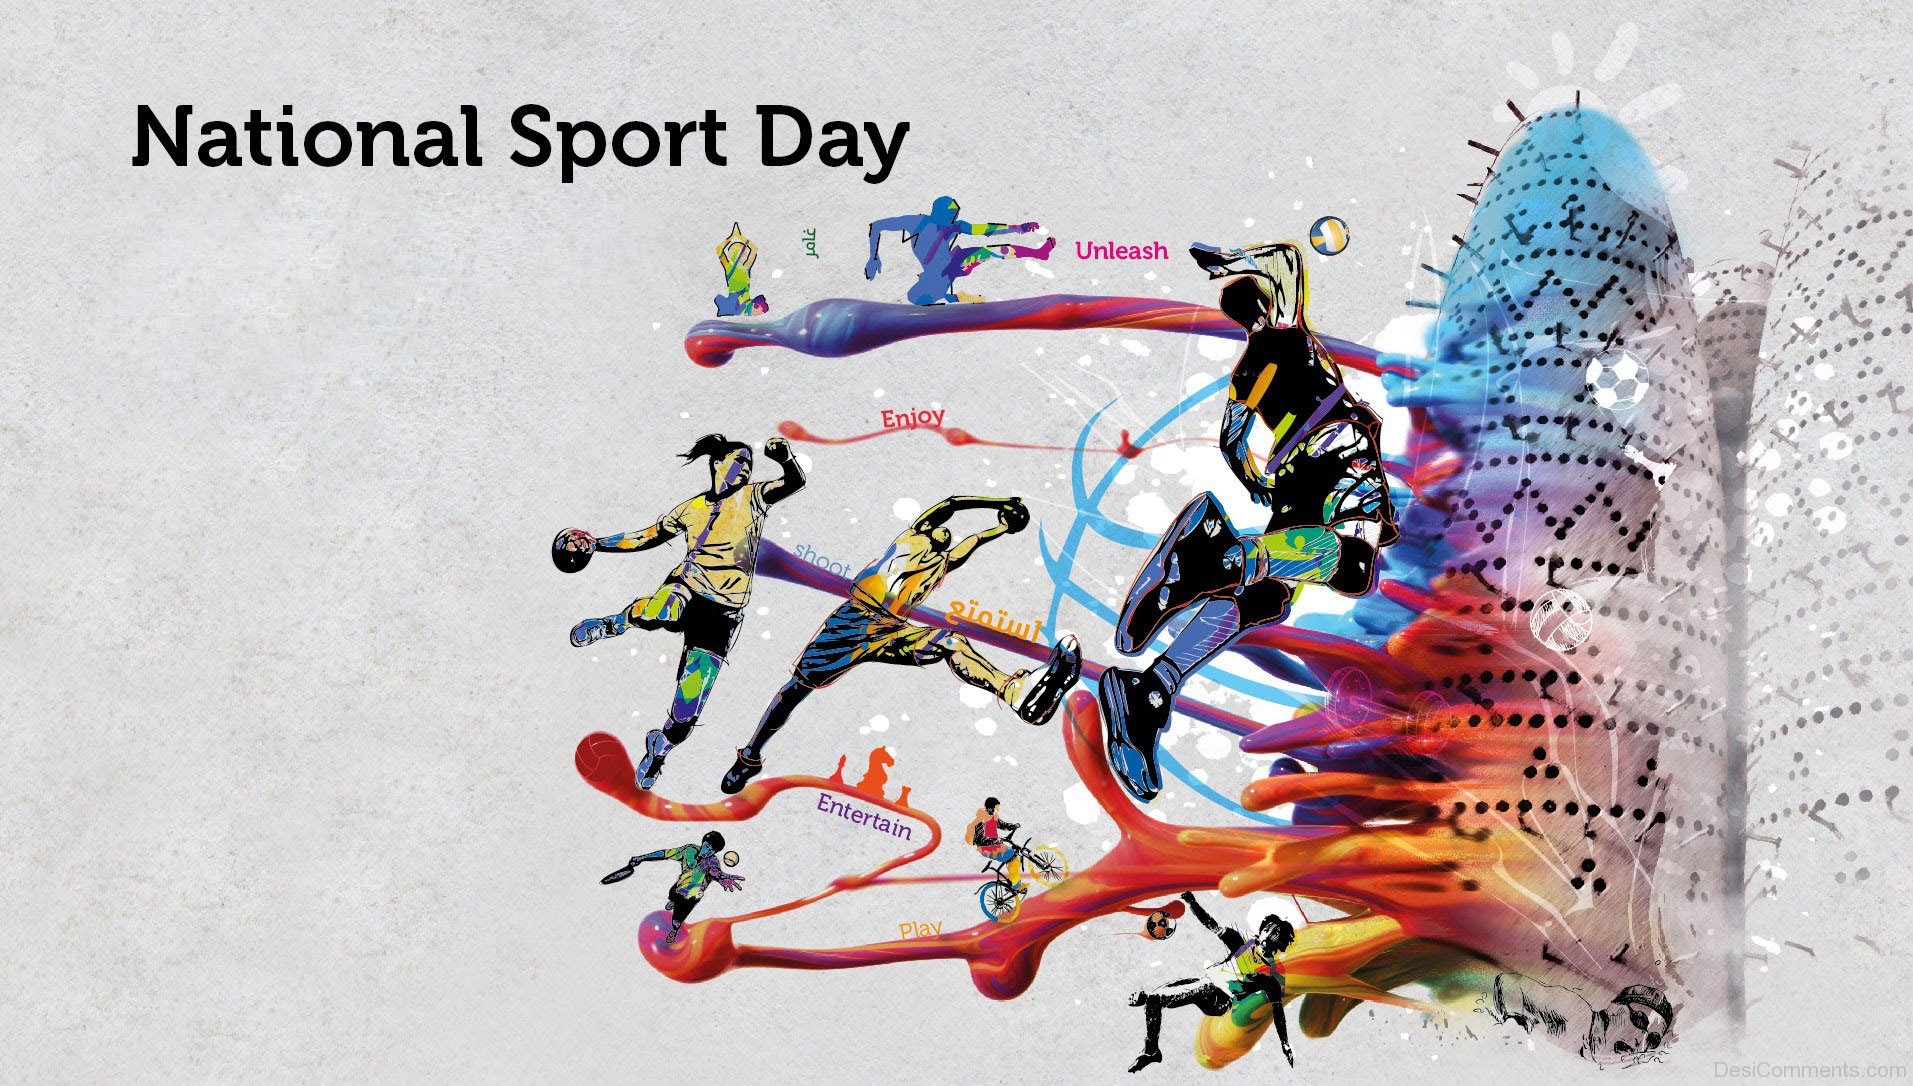 sports day August 31 release day hi everybody today is the release day of wild animal sports day i hope you enjoy it i've no idea if people will like this game so it will be interesting to find out in the next week or so.